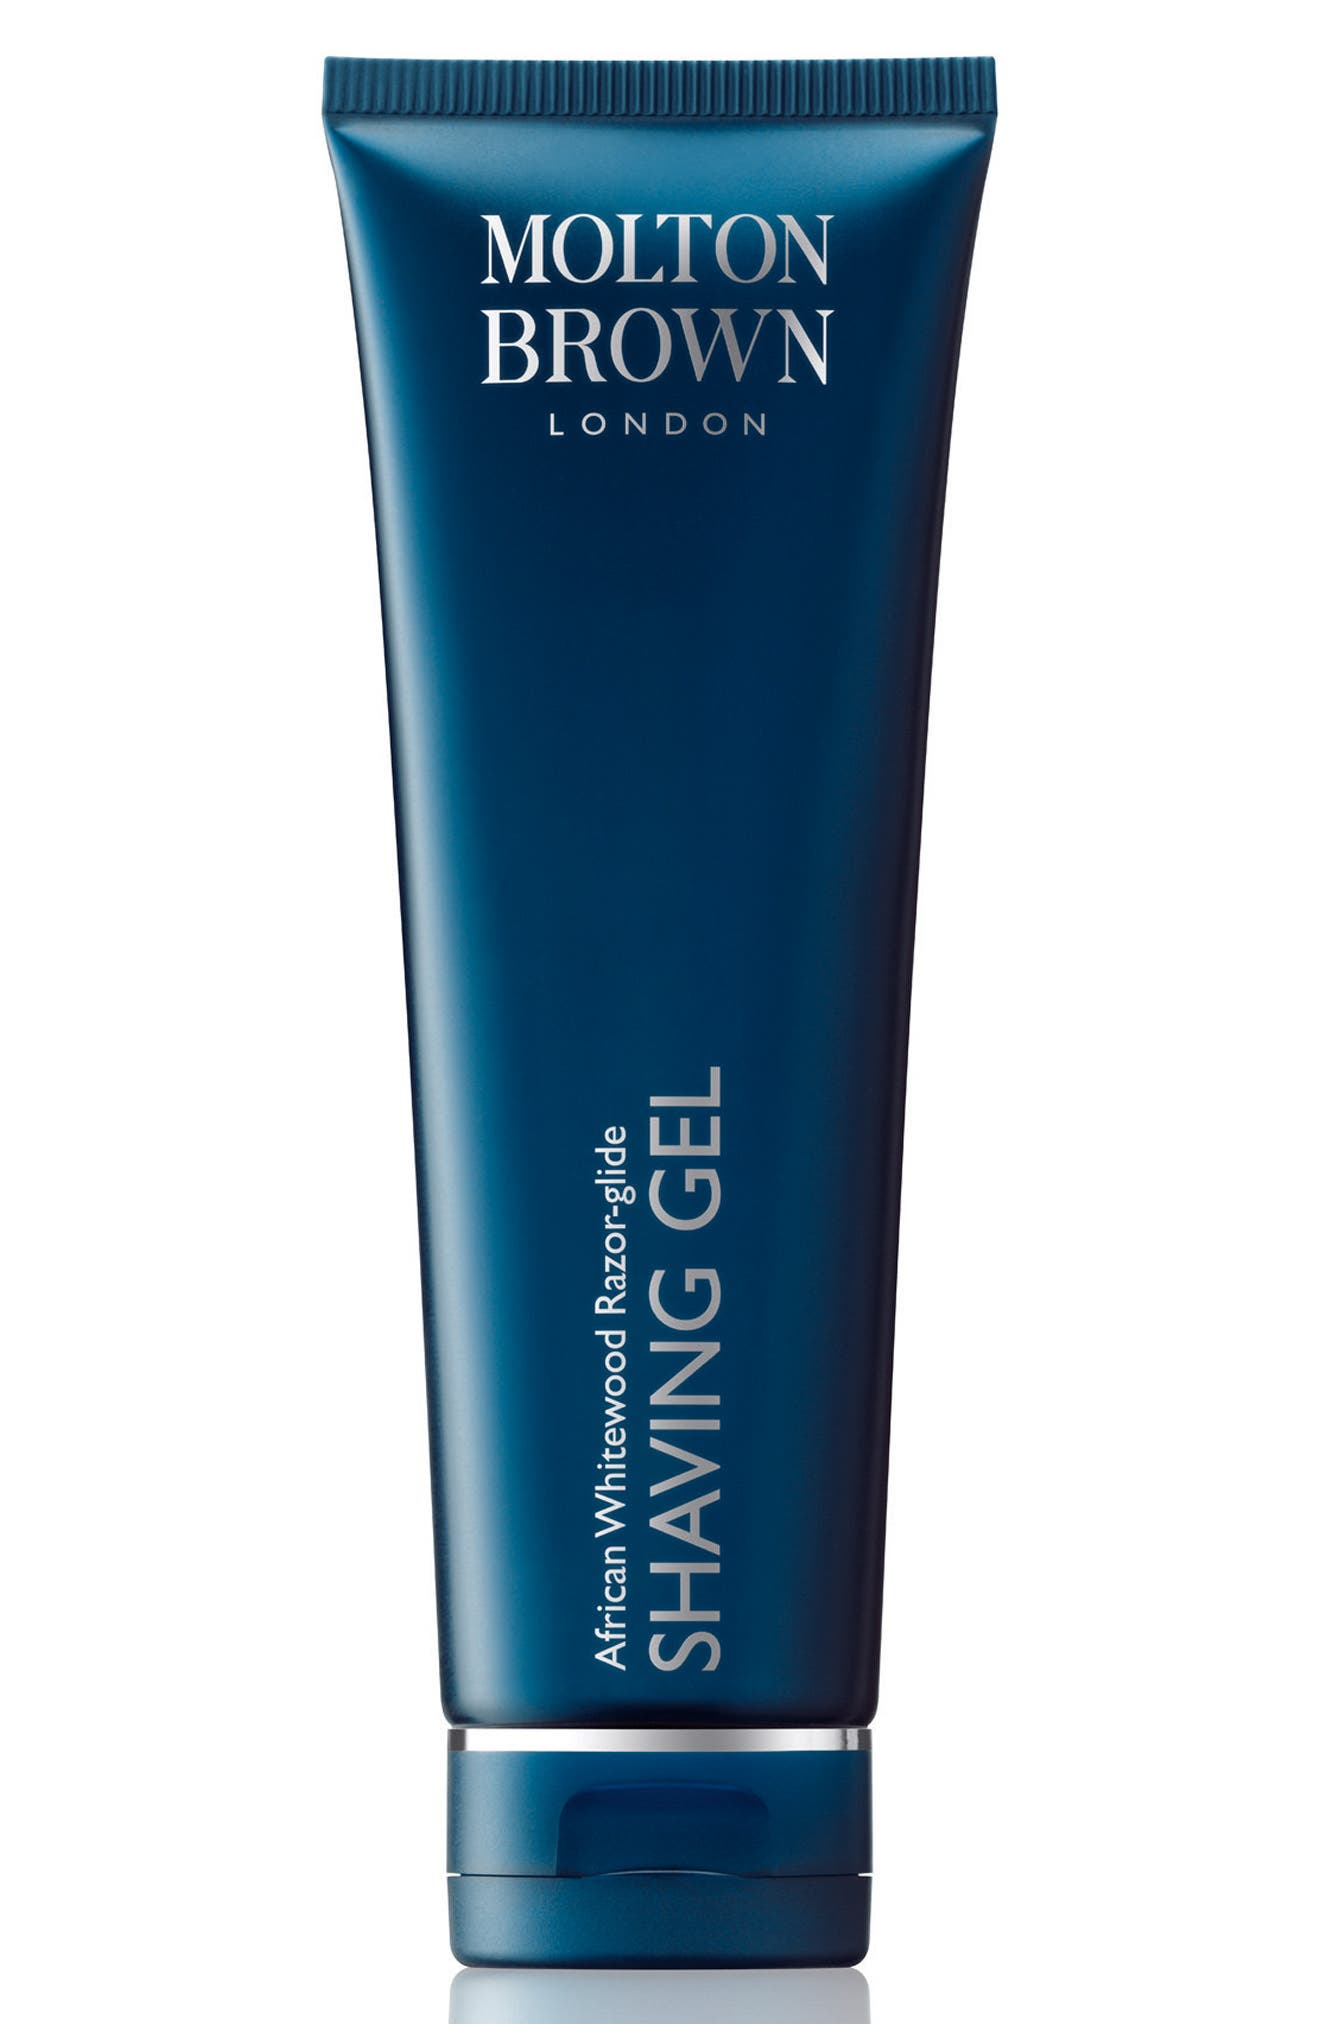 MOLTON BROWN London Razor-Glide Shaving Gel